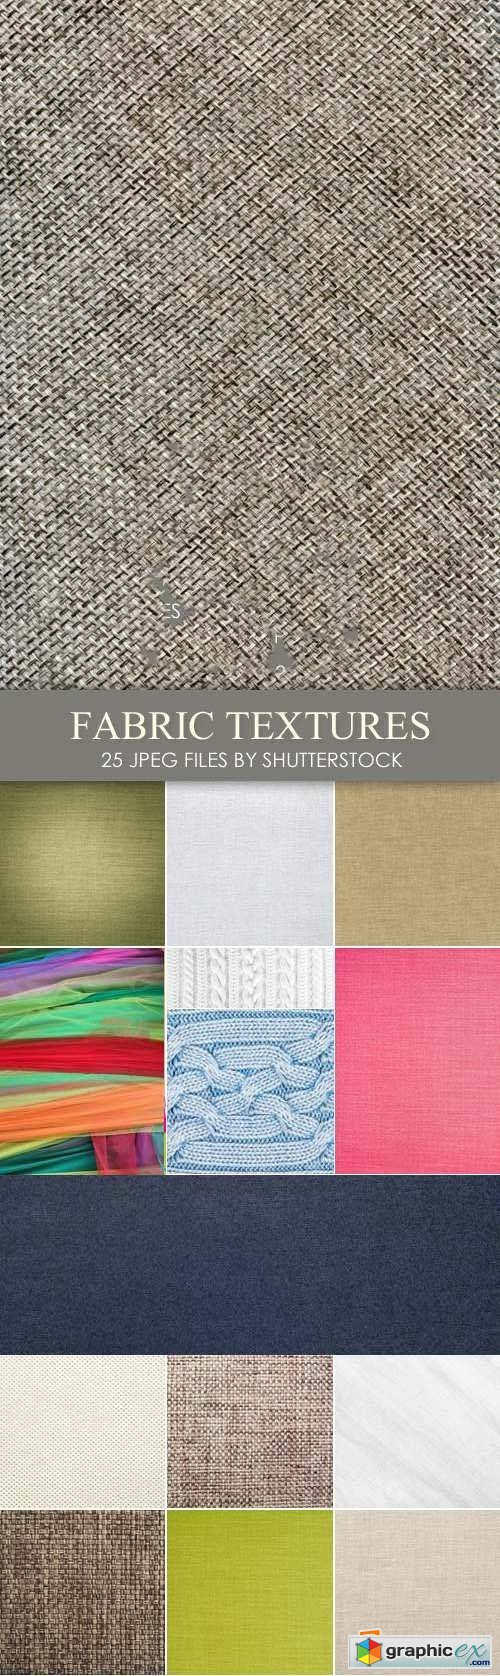 Stock Photo - Fabric Textures, Backgrounds